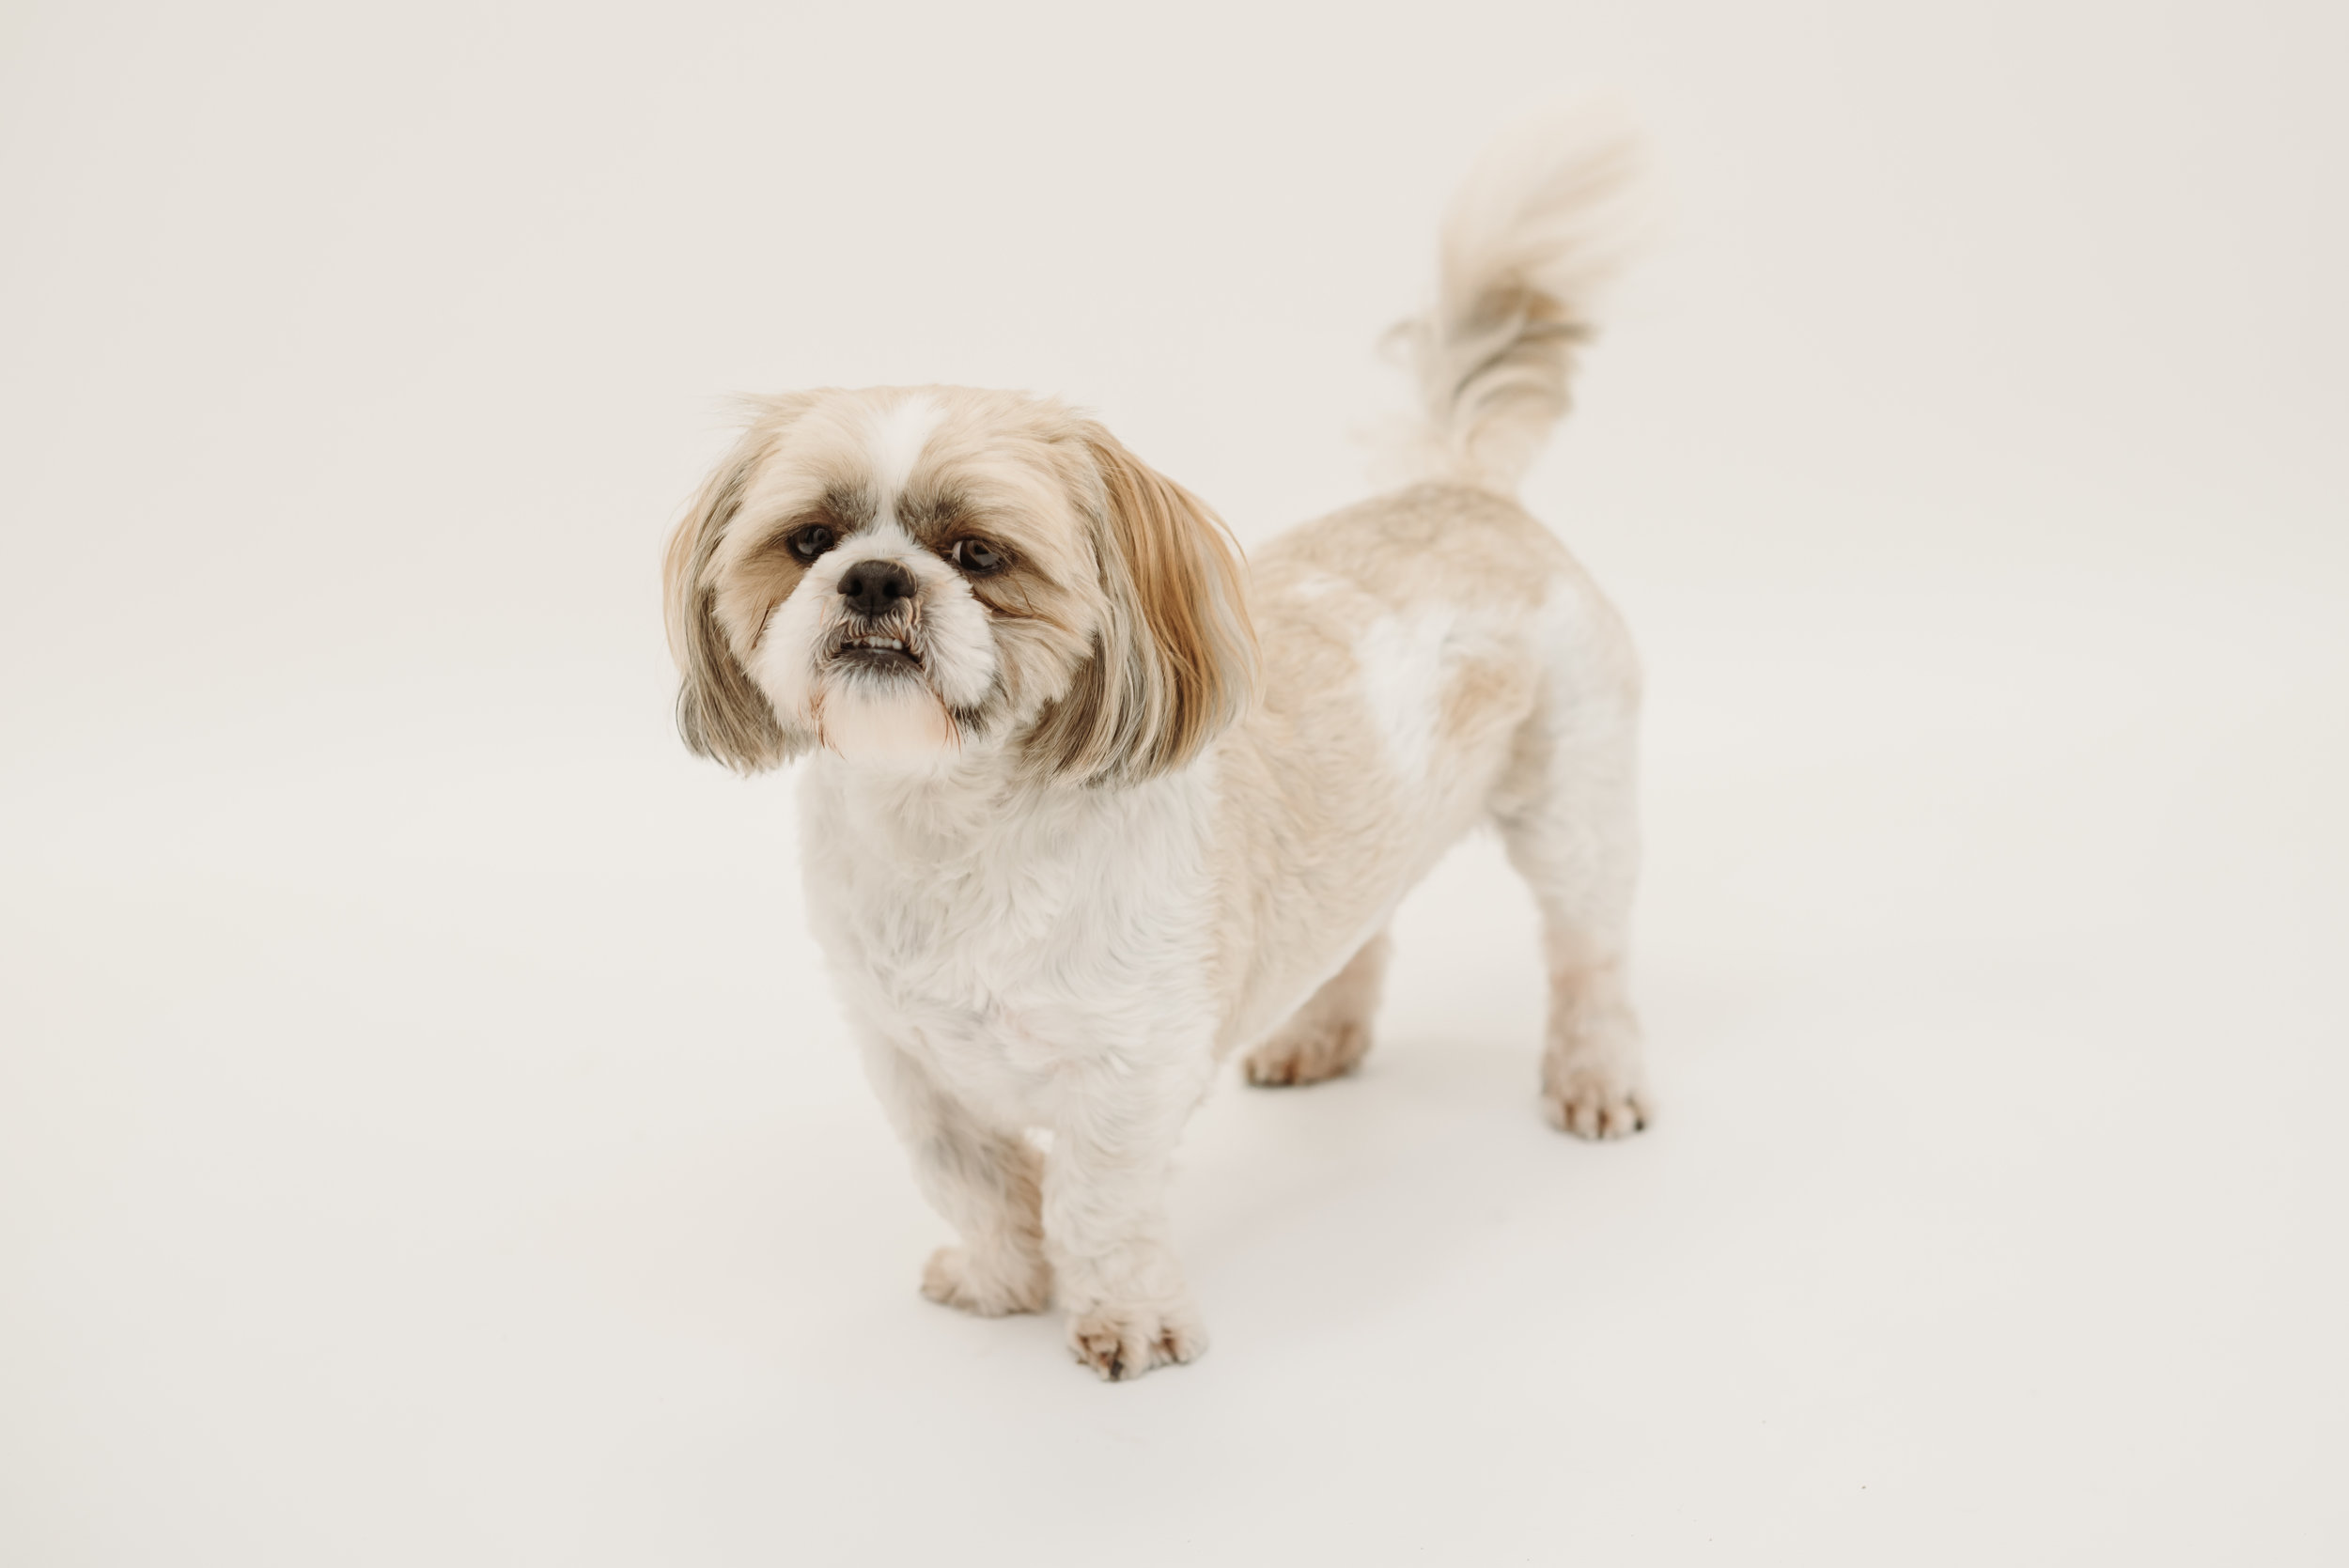 Shih tzu photo shoot - lancashire